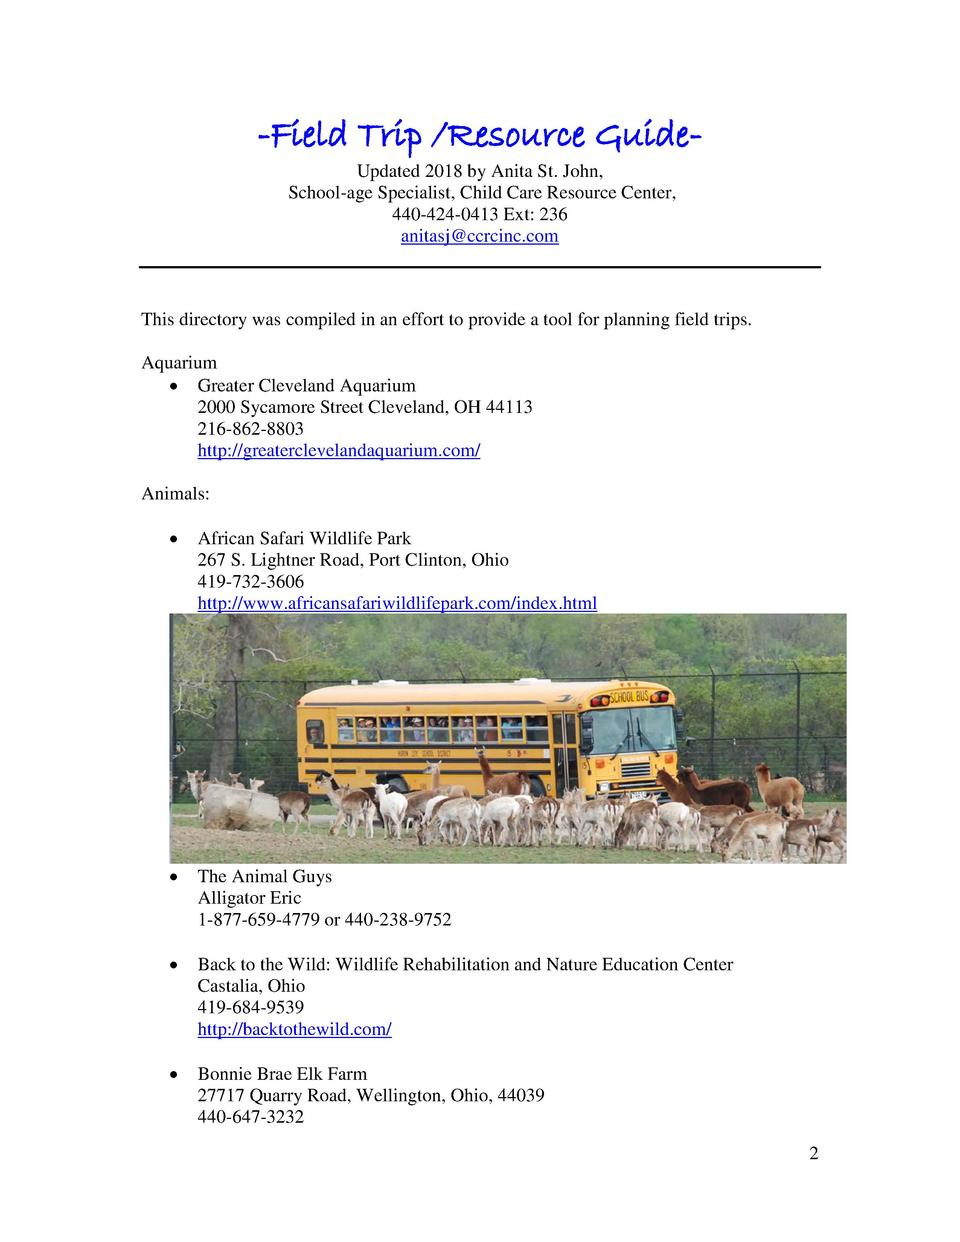 -Field Trip  Resource GuideUpdated 2018 by Anita St. John, School-age Specialist, Child Care Resource Center, 440-424-0413...